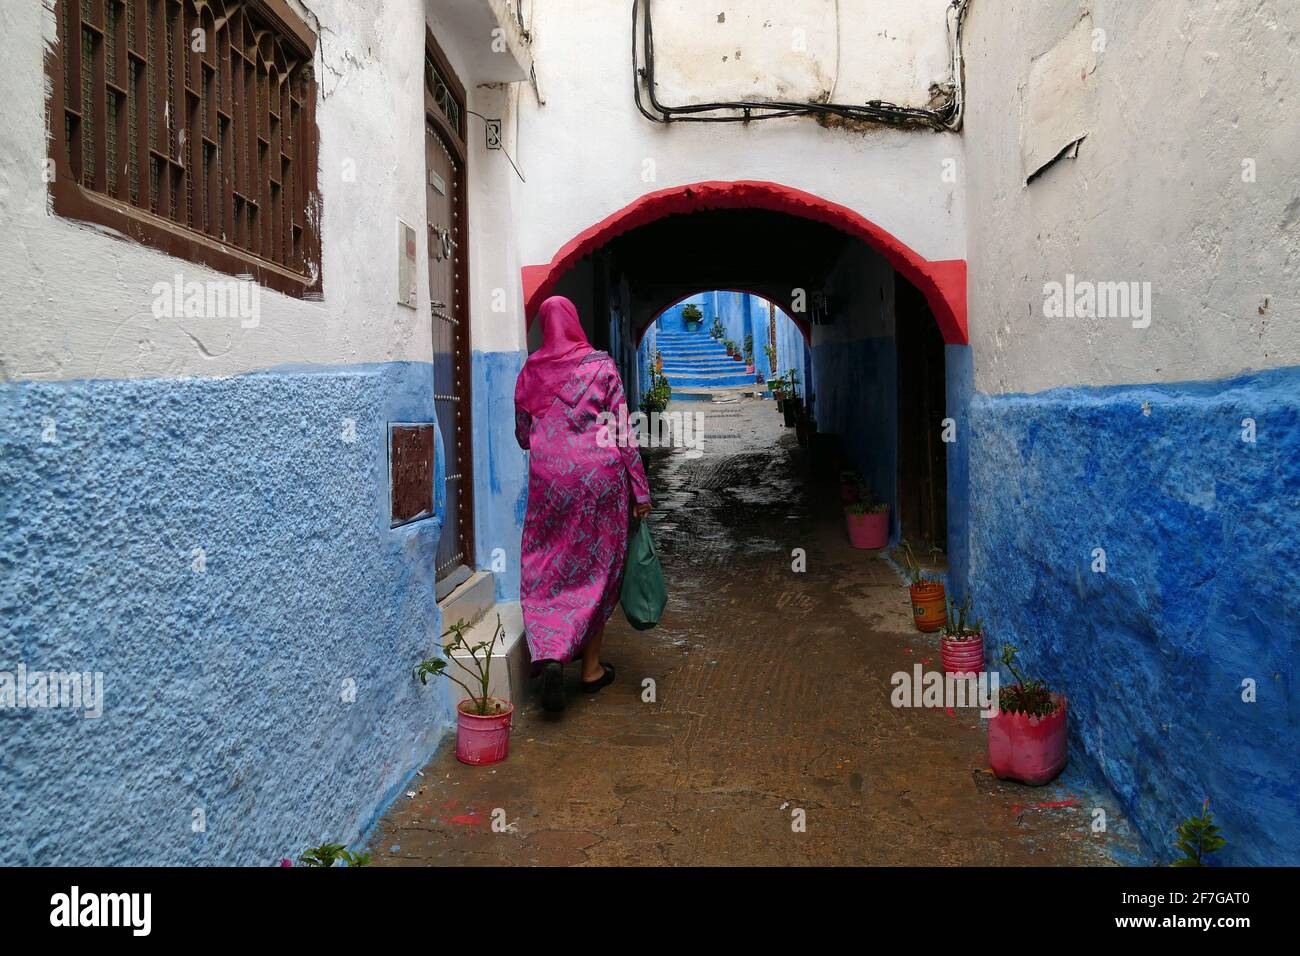 Woman with pink dress walking in a little colorful alley in the medina of Tetouan, North of Morocco, Africa Stock Photo